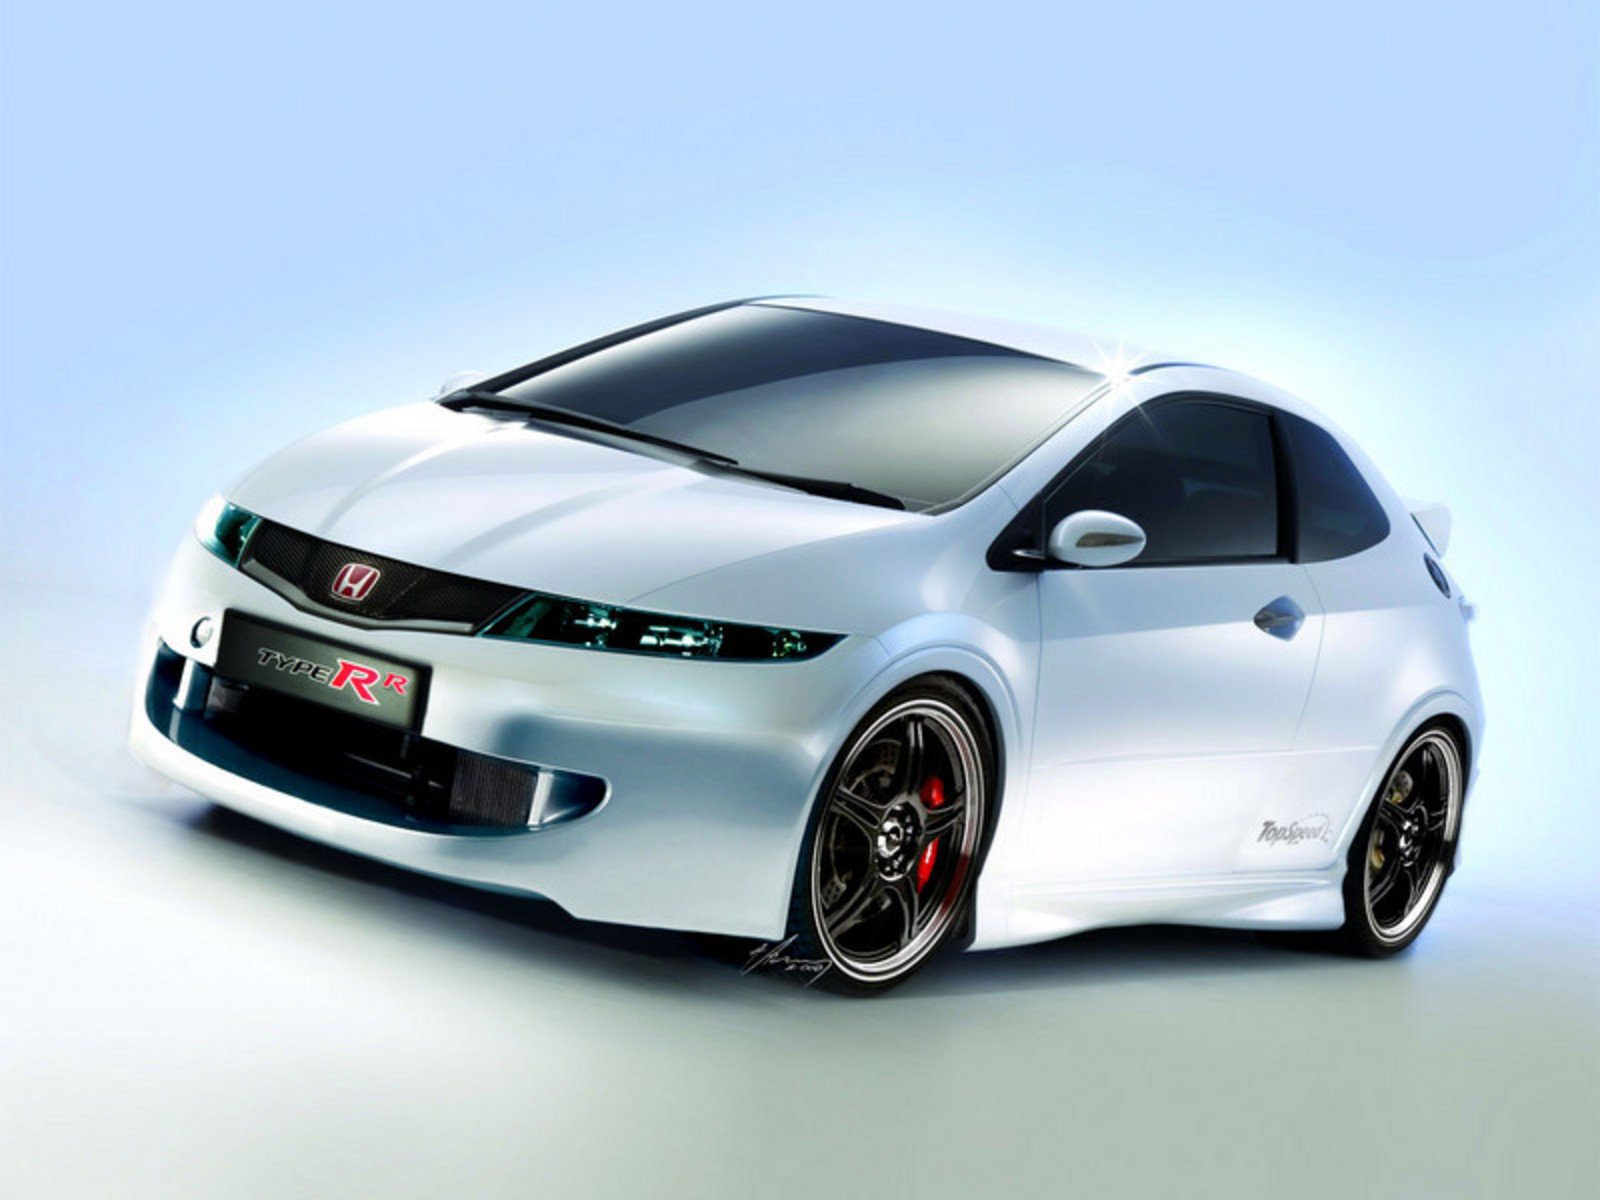 2007 honda civic type r picture 86813 car review top speed. Black Bedroom Furniture Sets. Home Design Ideas